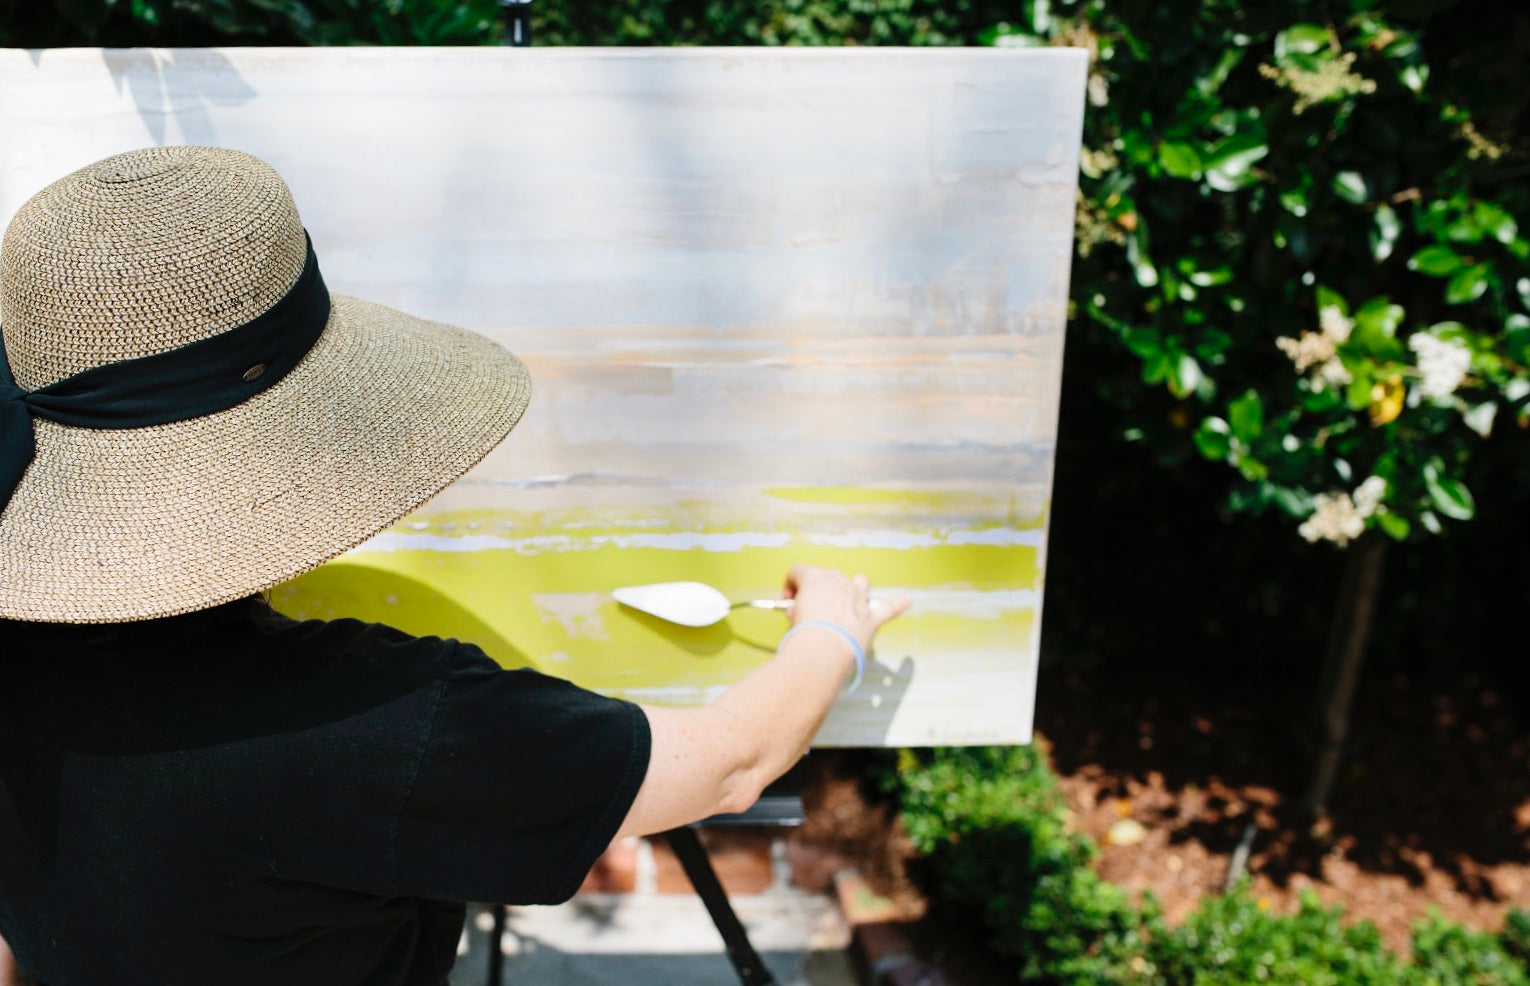 Barbara Sussberg, painting en plein air